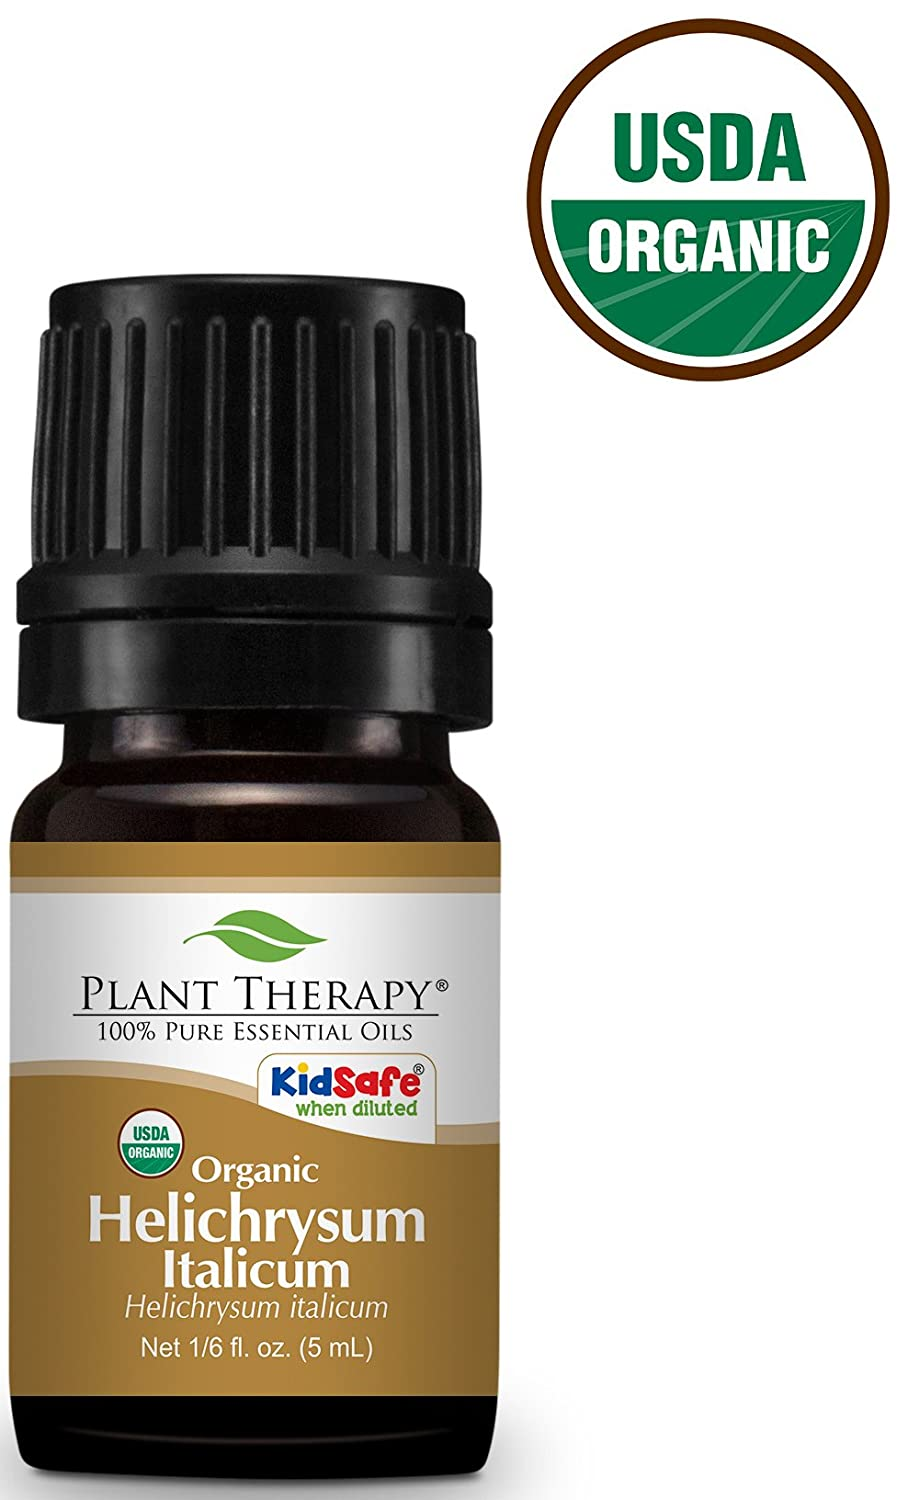 Plant Therapy Helichrysum Italicum Organic Essential Oil 2.5 mL (1/12 oz) 100% Pure, Undiluted, Therapeutic Grade Plant Therapy Essential Oils